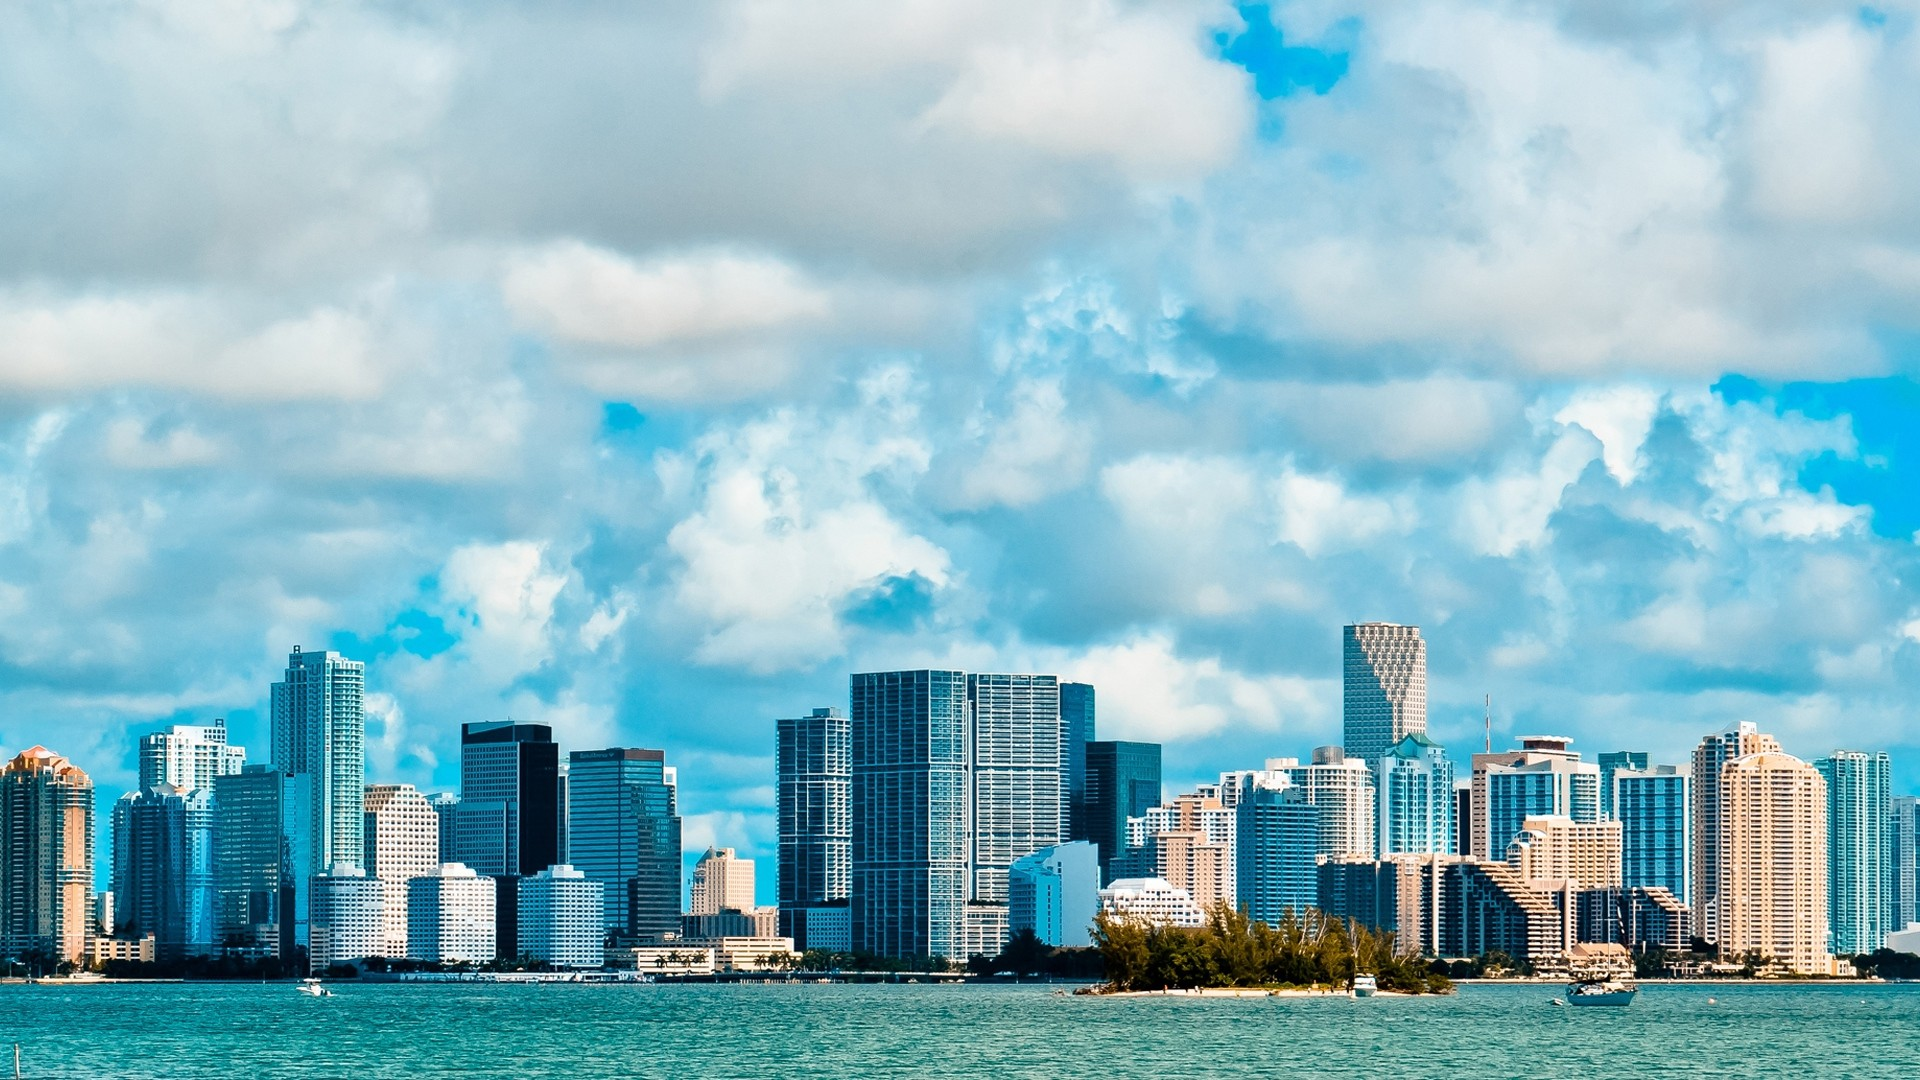 Res: 1920x1080, ... miami business center overcast ocean side view ...